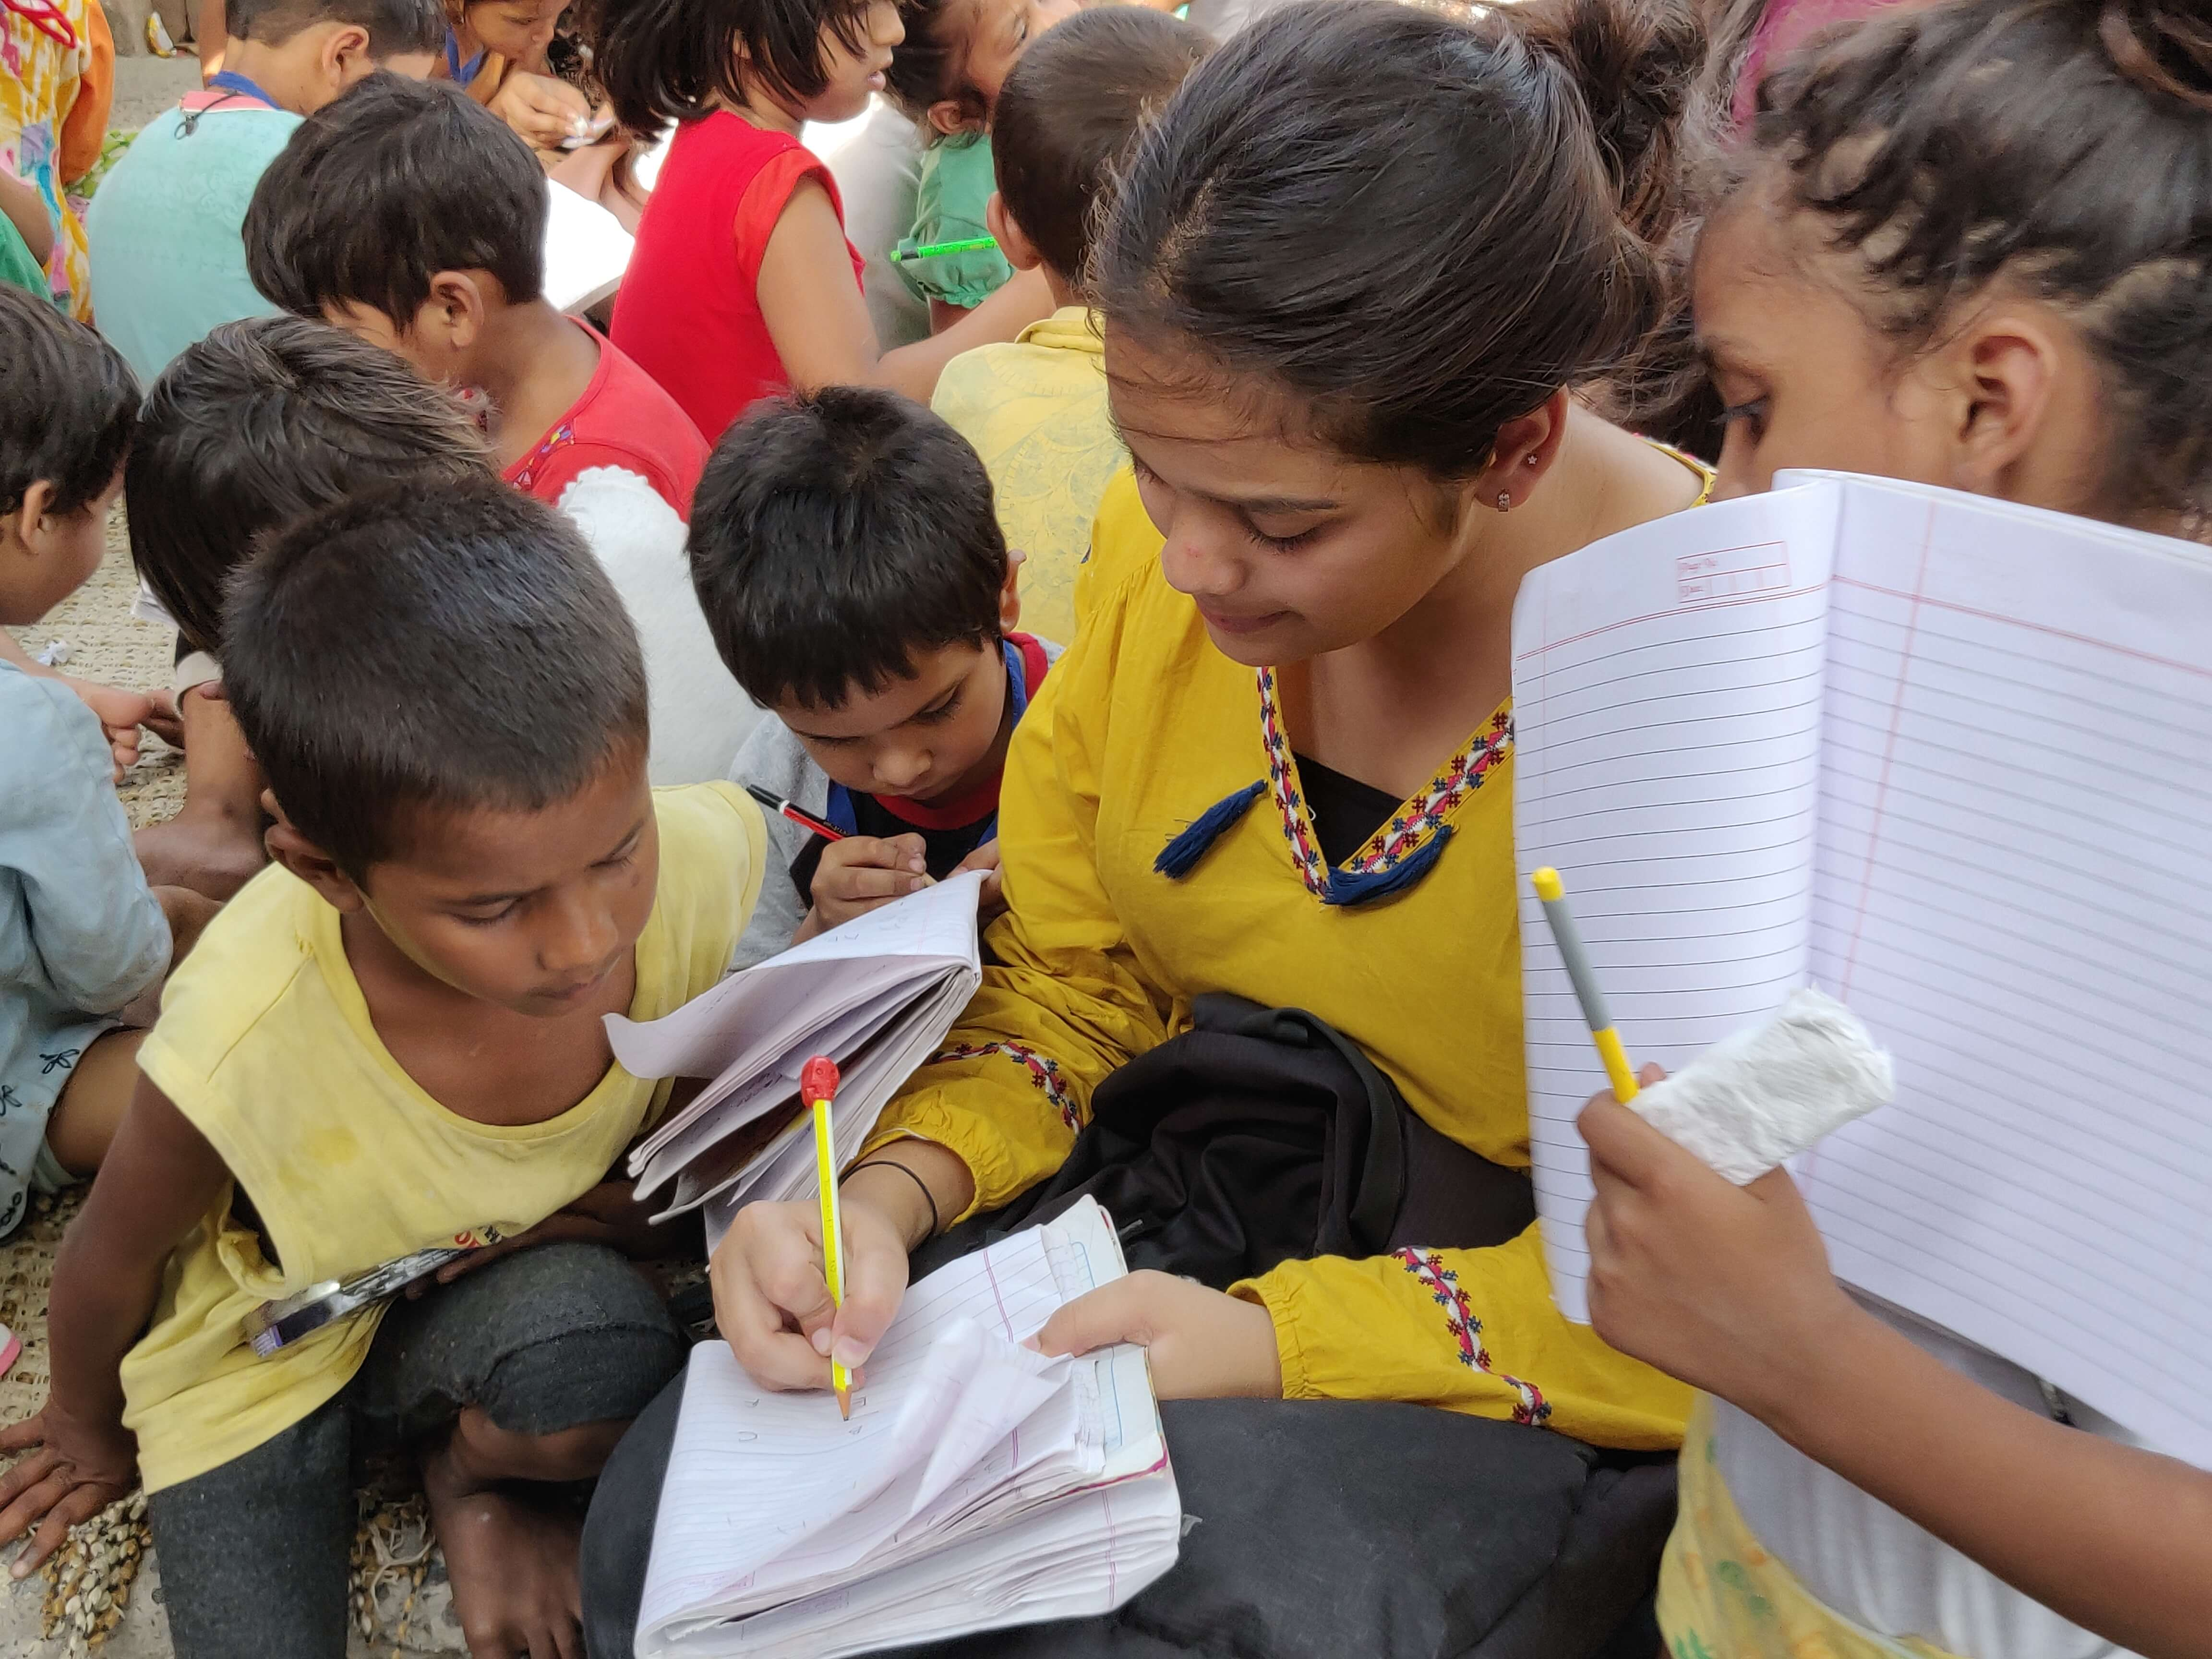 Pehchaa The Street School - Embracing the dreamer in each child 2